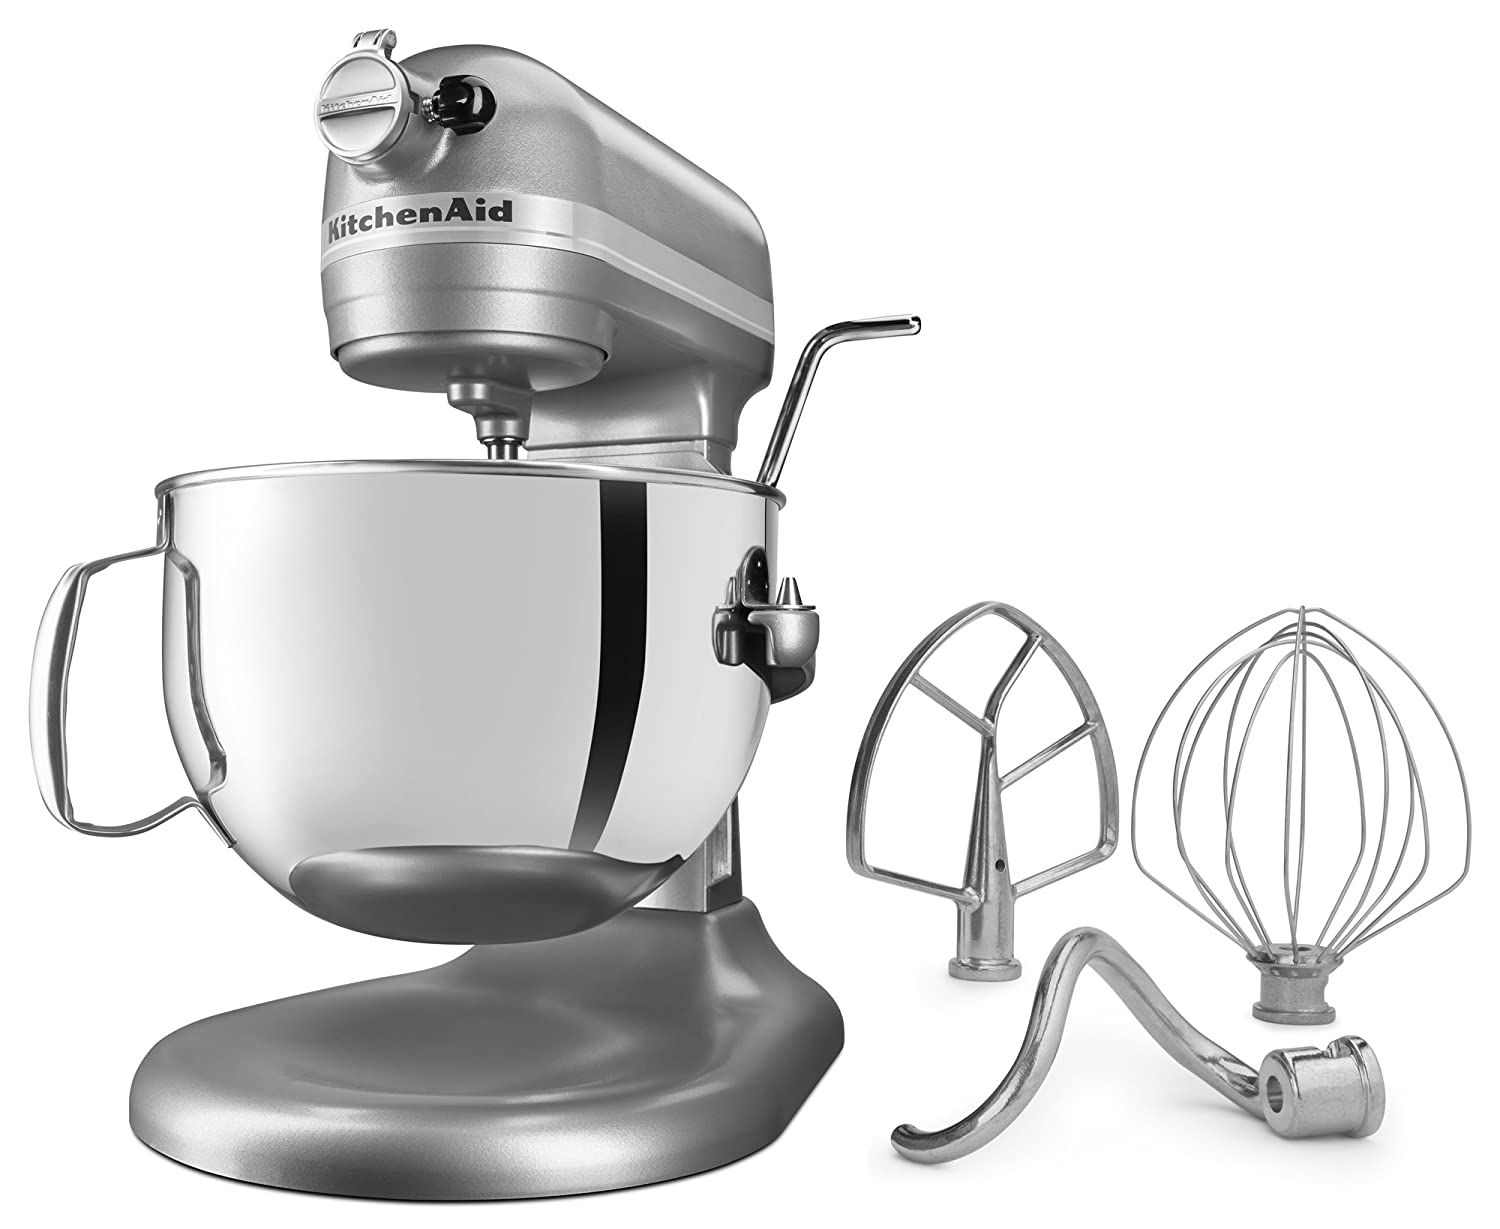 Kitchen aid 6 quart mixer - Amazon Com Kitchenaid Kl26m1xsl Professional 6 Qt Bowl Lift Stand Mixer Silver Kitchen Dining